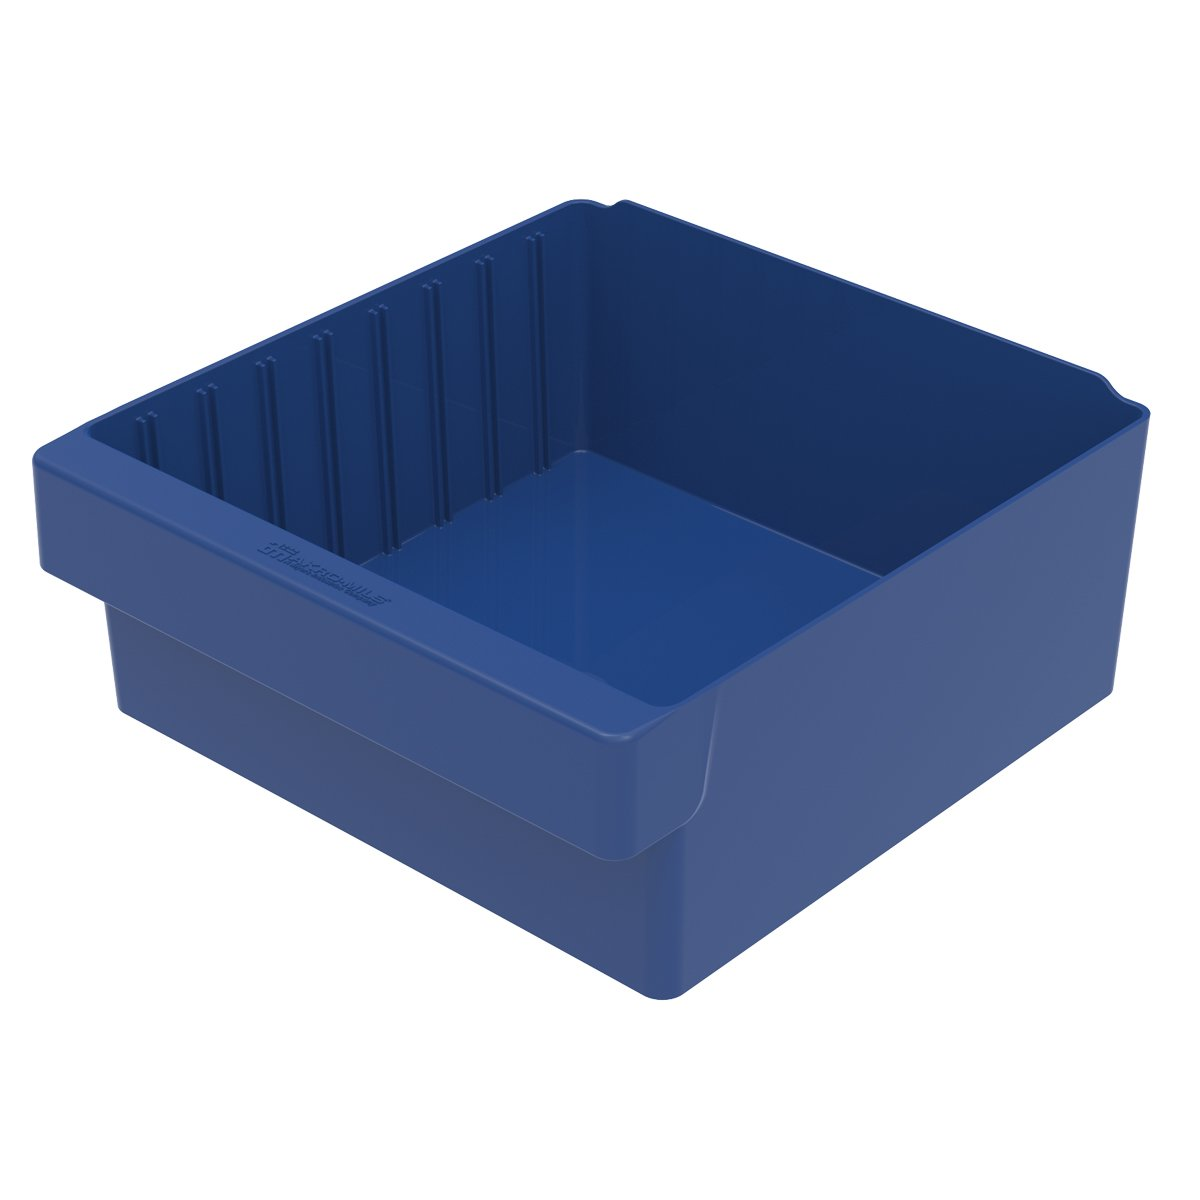 Akro-Mils 31112 11-5/8-Inch L by 11-1/8-Inch W by 4-5/8-Inch H AkroDrawer Plastic Storage Drawer, Blue, Case of 4